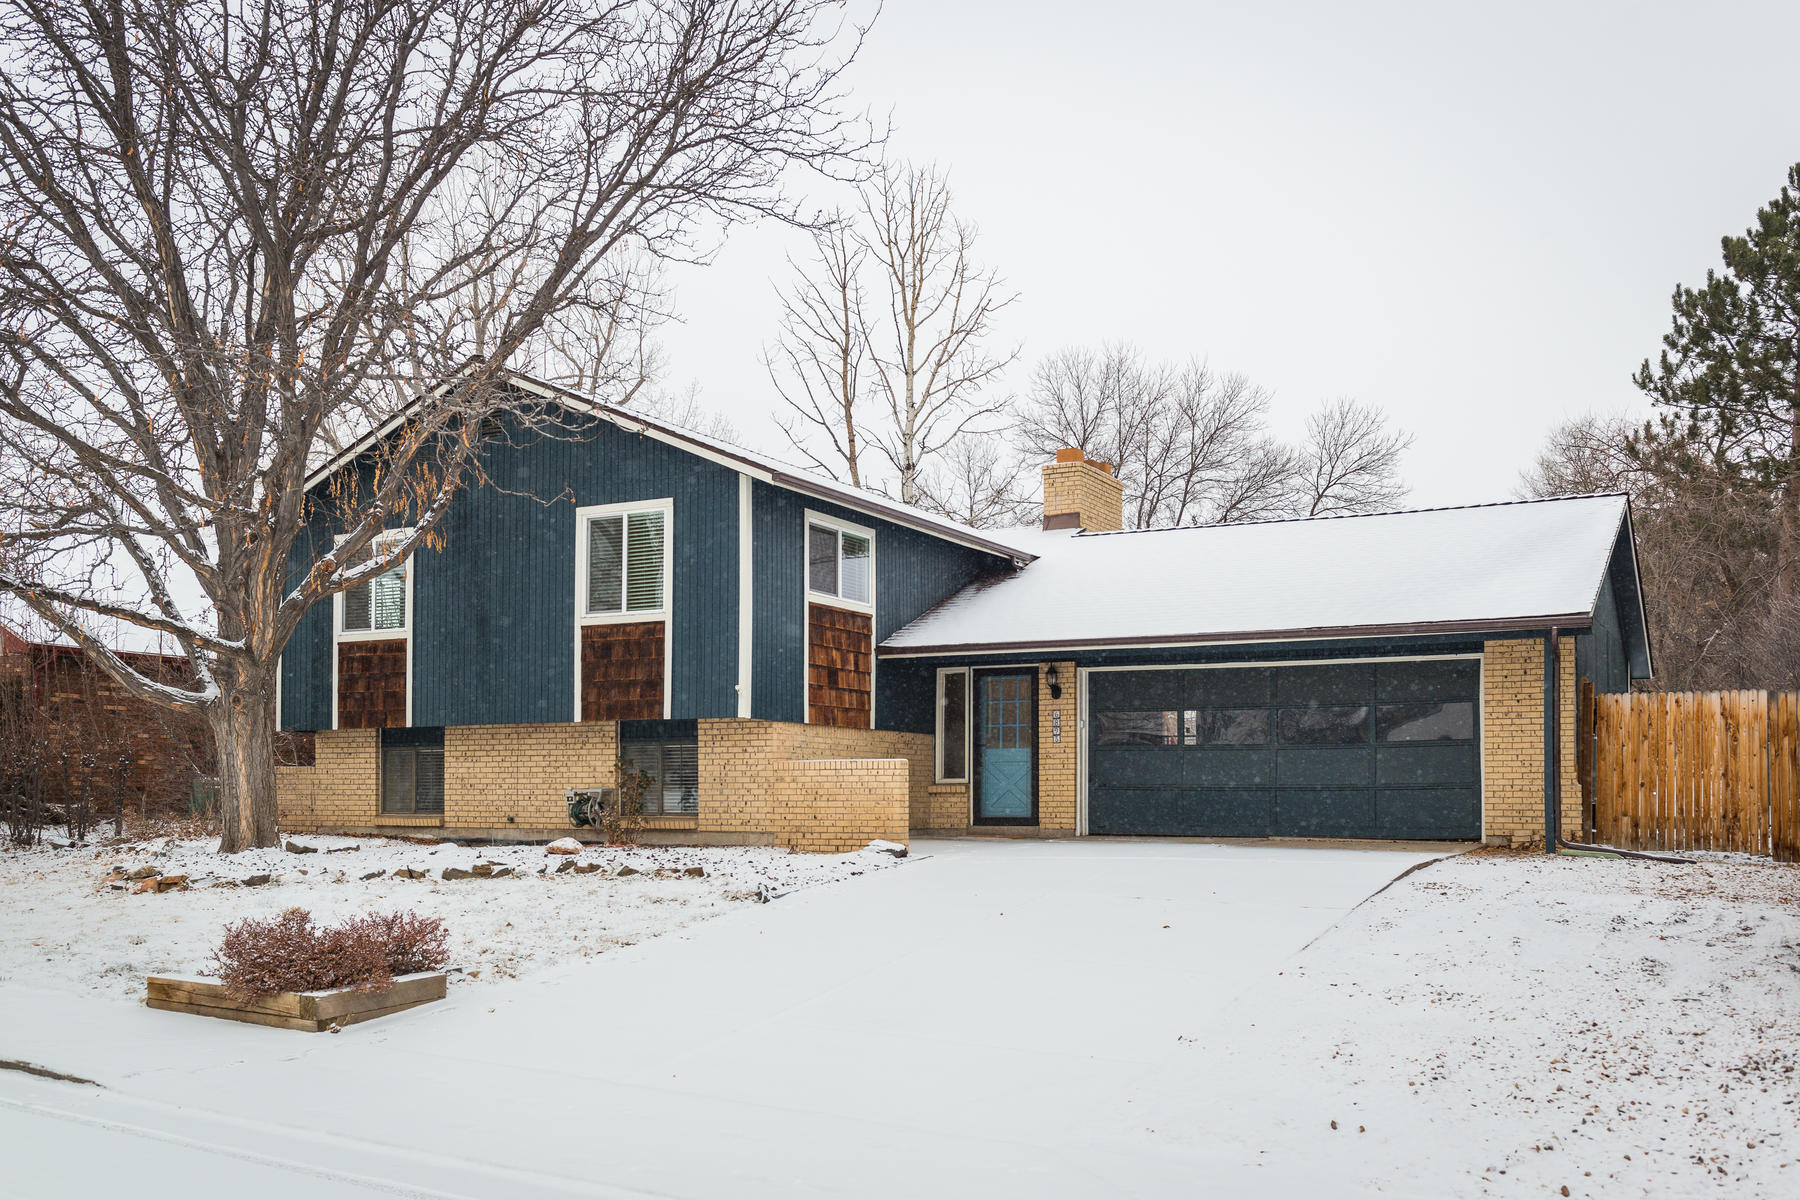 Single Family Home for Active at Great Move-in Ready House in Columbine West 6895 S Webster St Littleton, Colorado 80128 United States